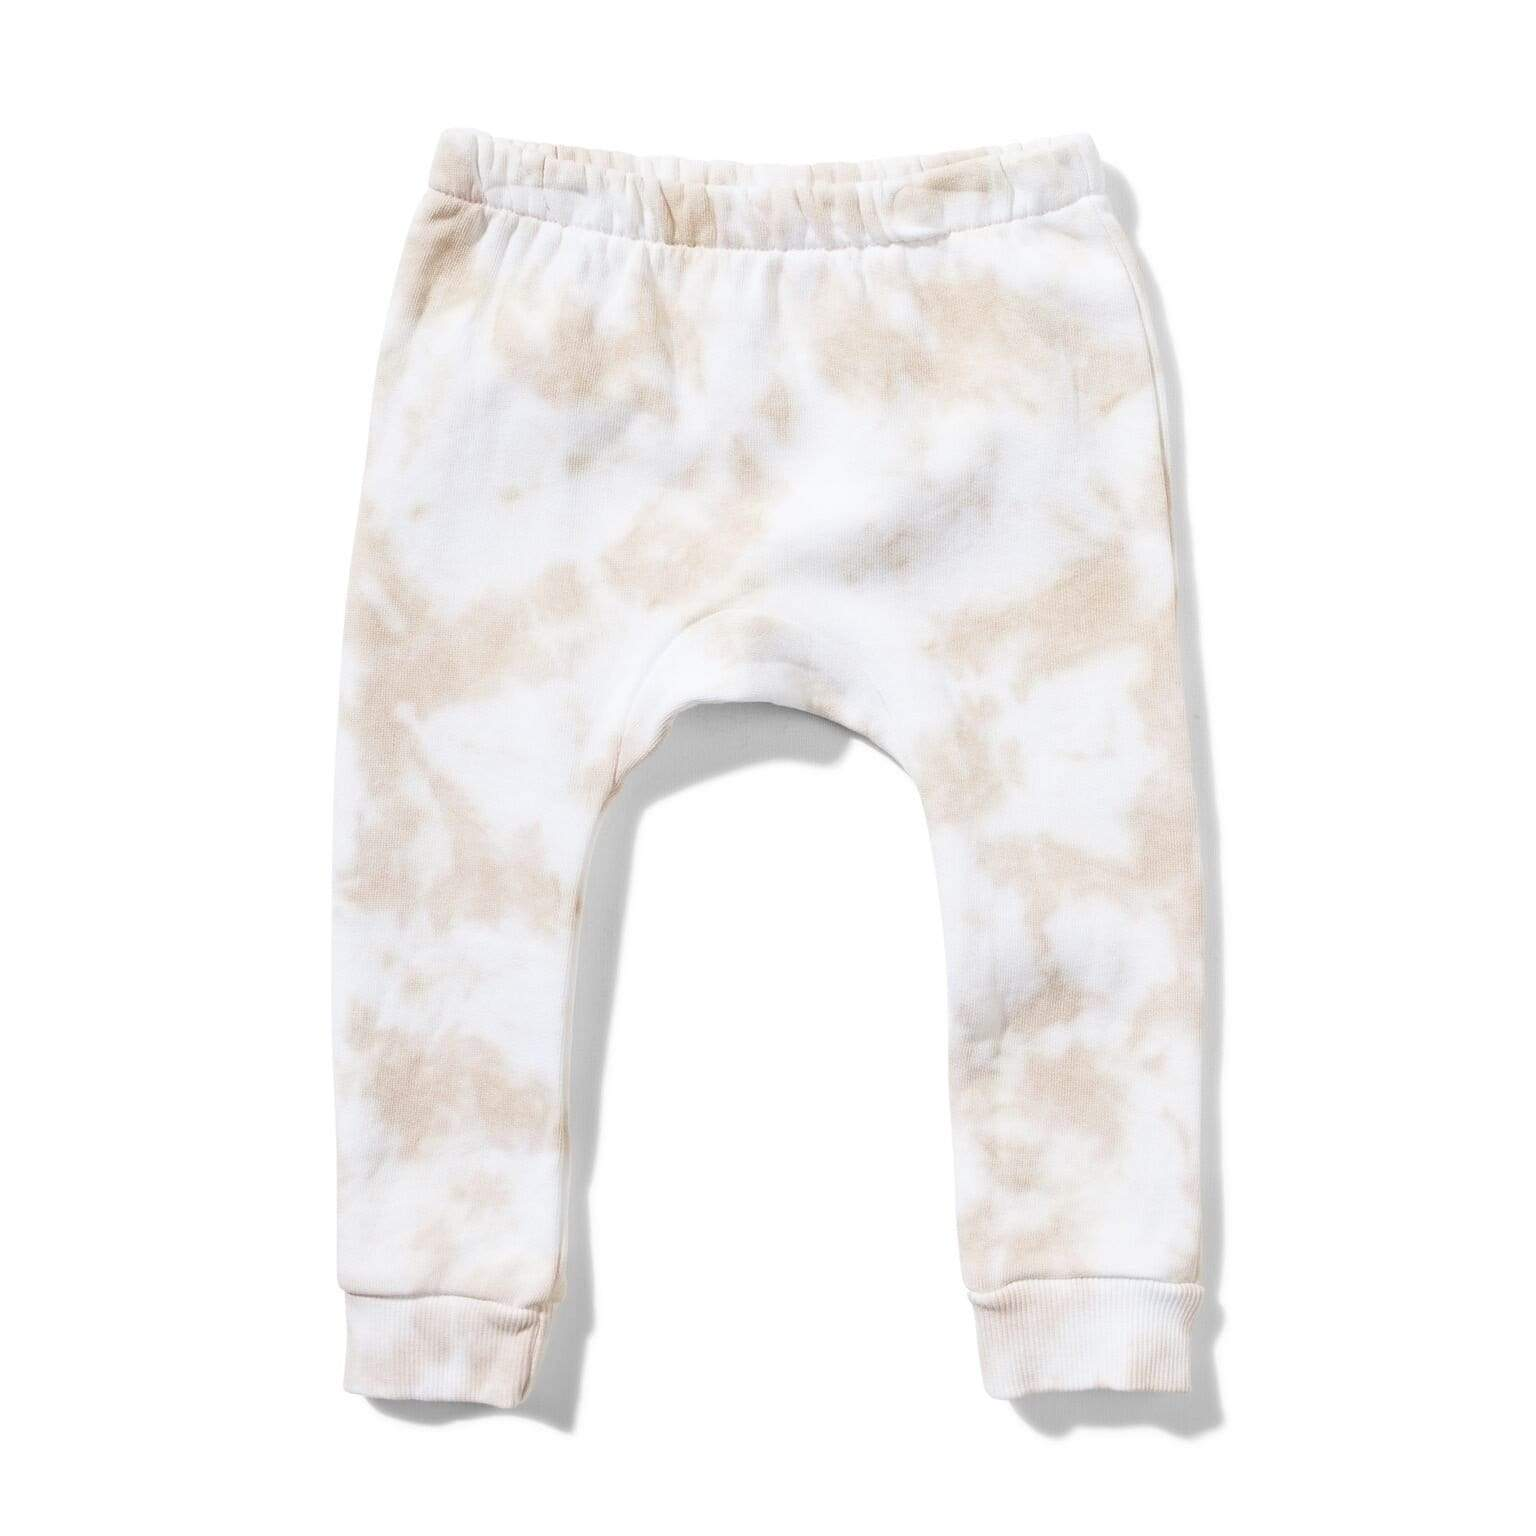 Munster Pants Echo Pant - Clay Tie Dye